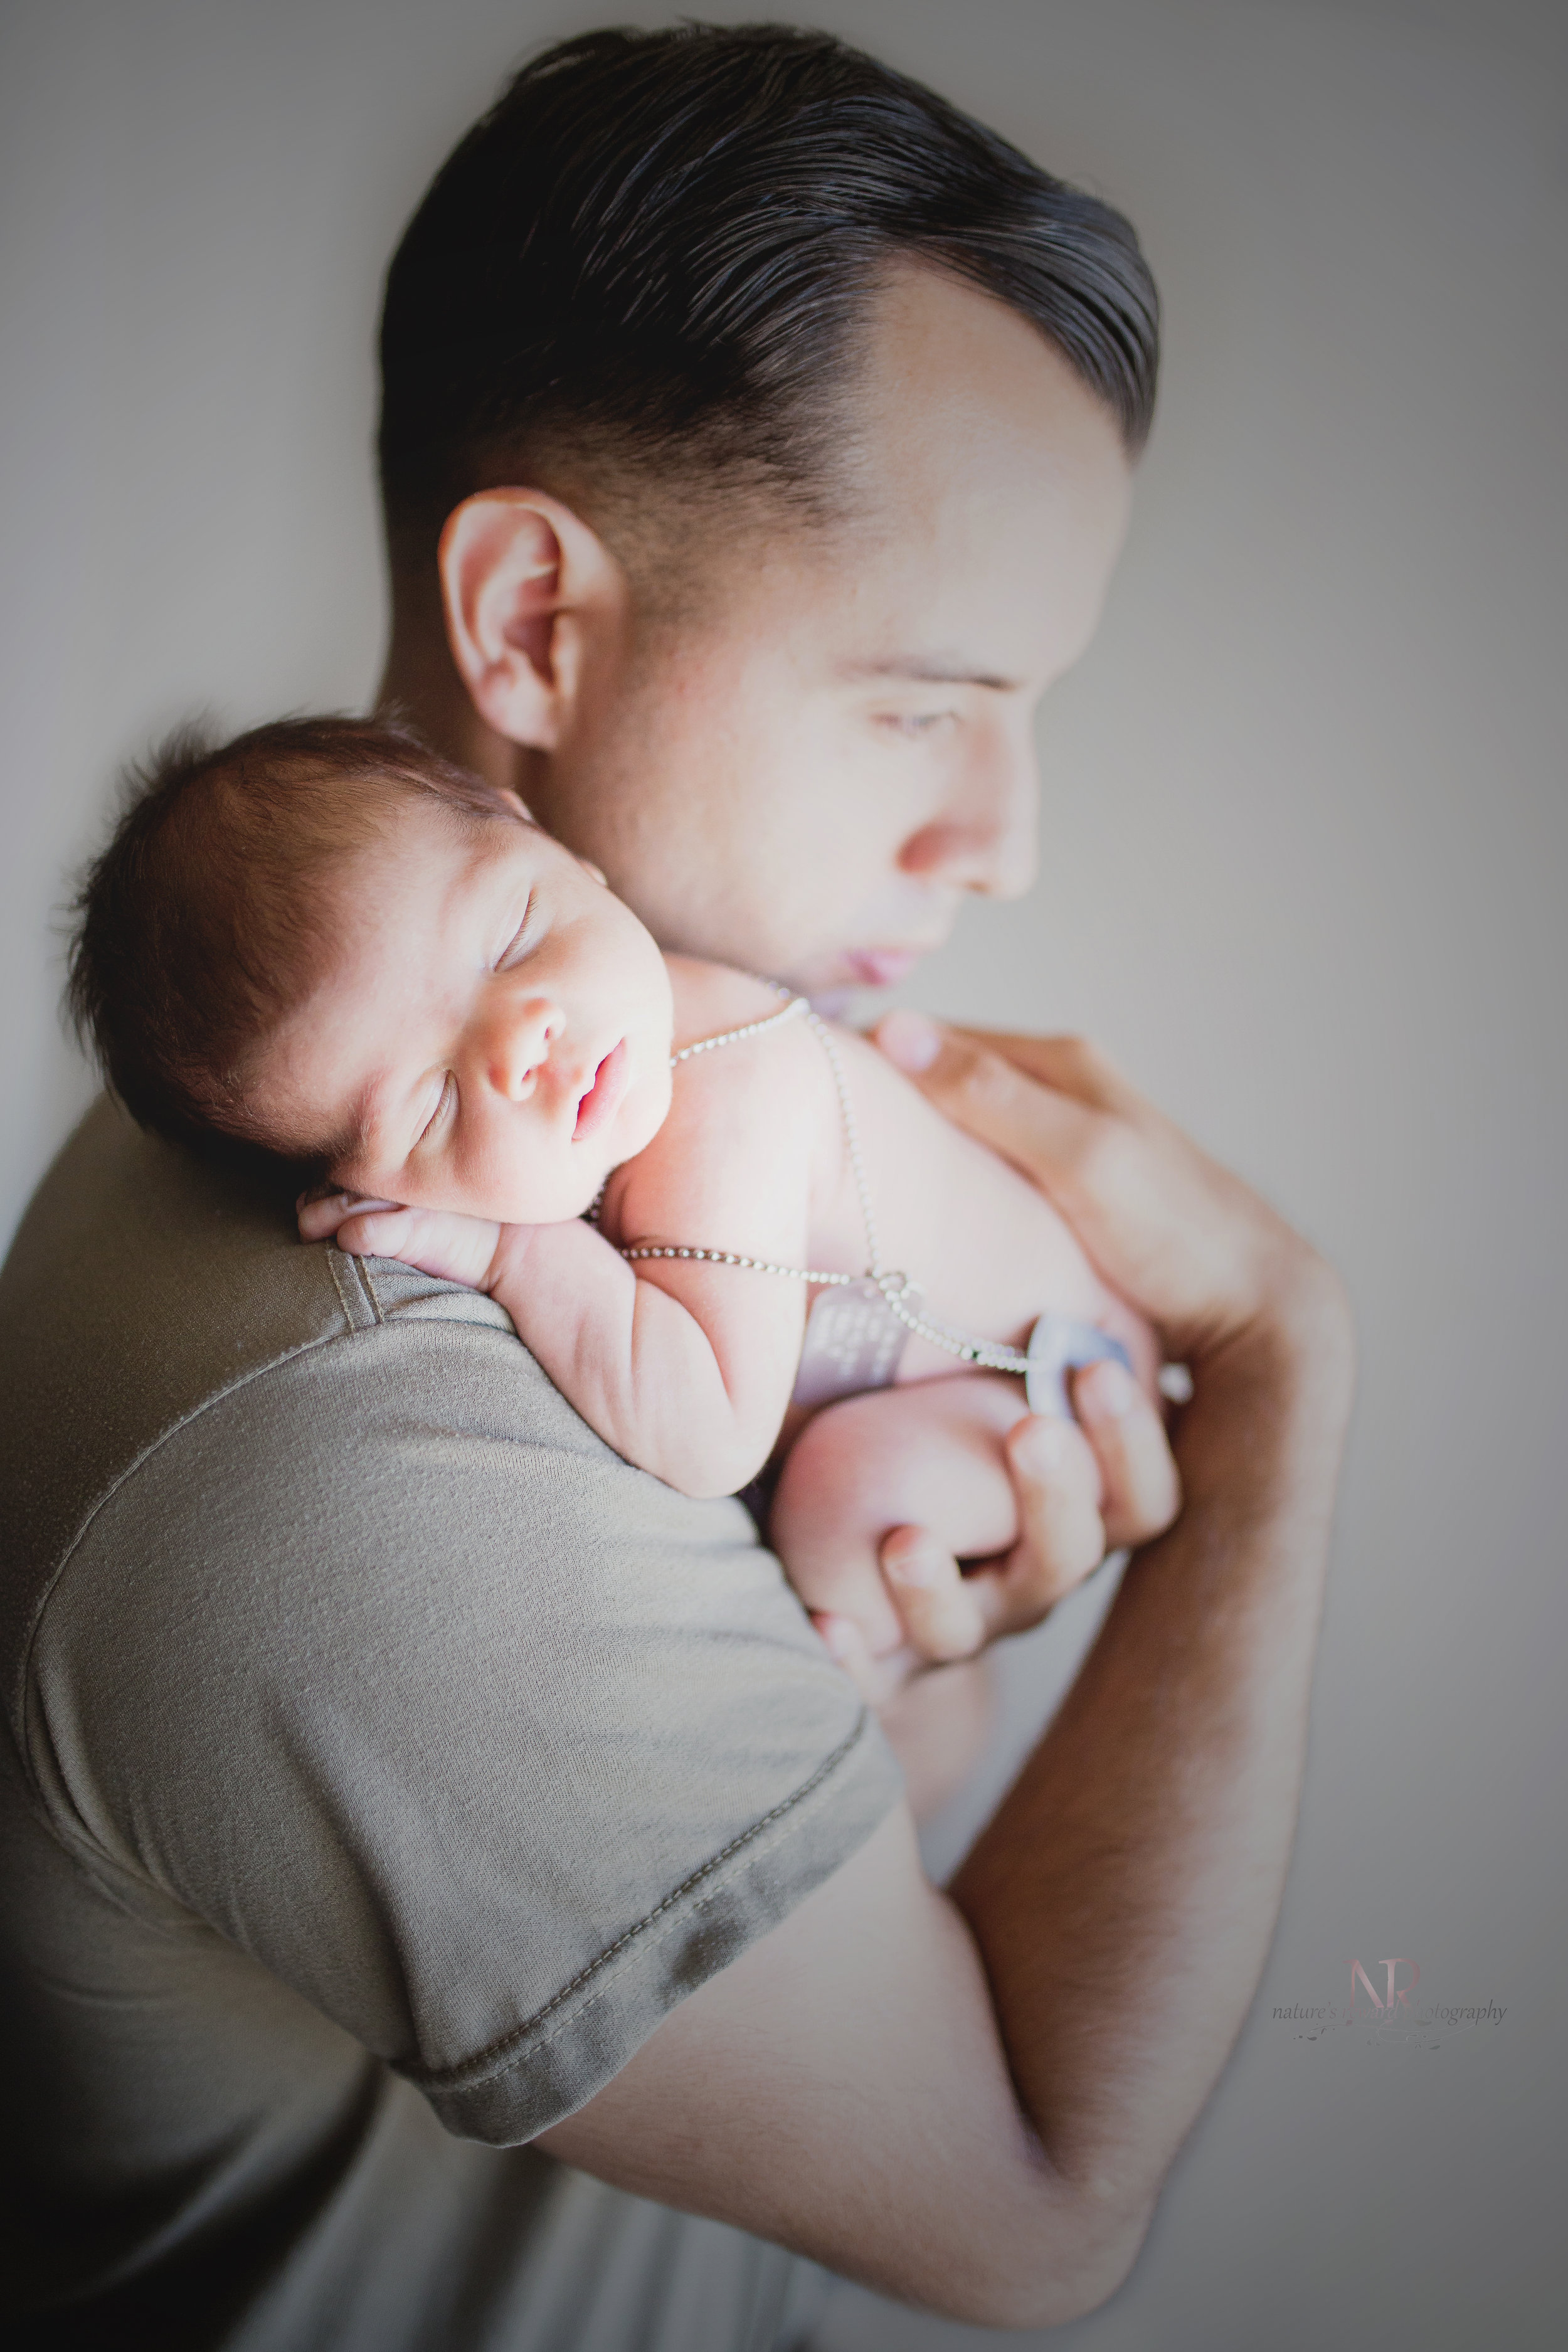 My favorite with dad. This newborn portrait speaks for itself.